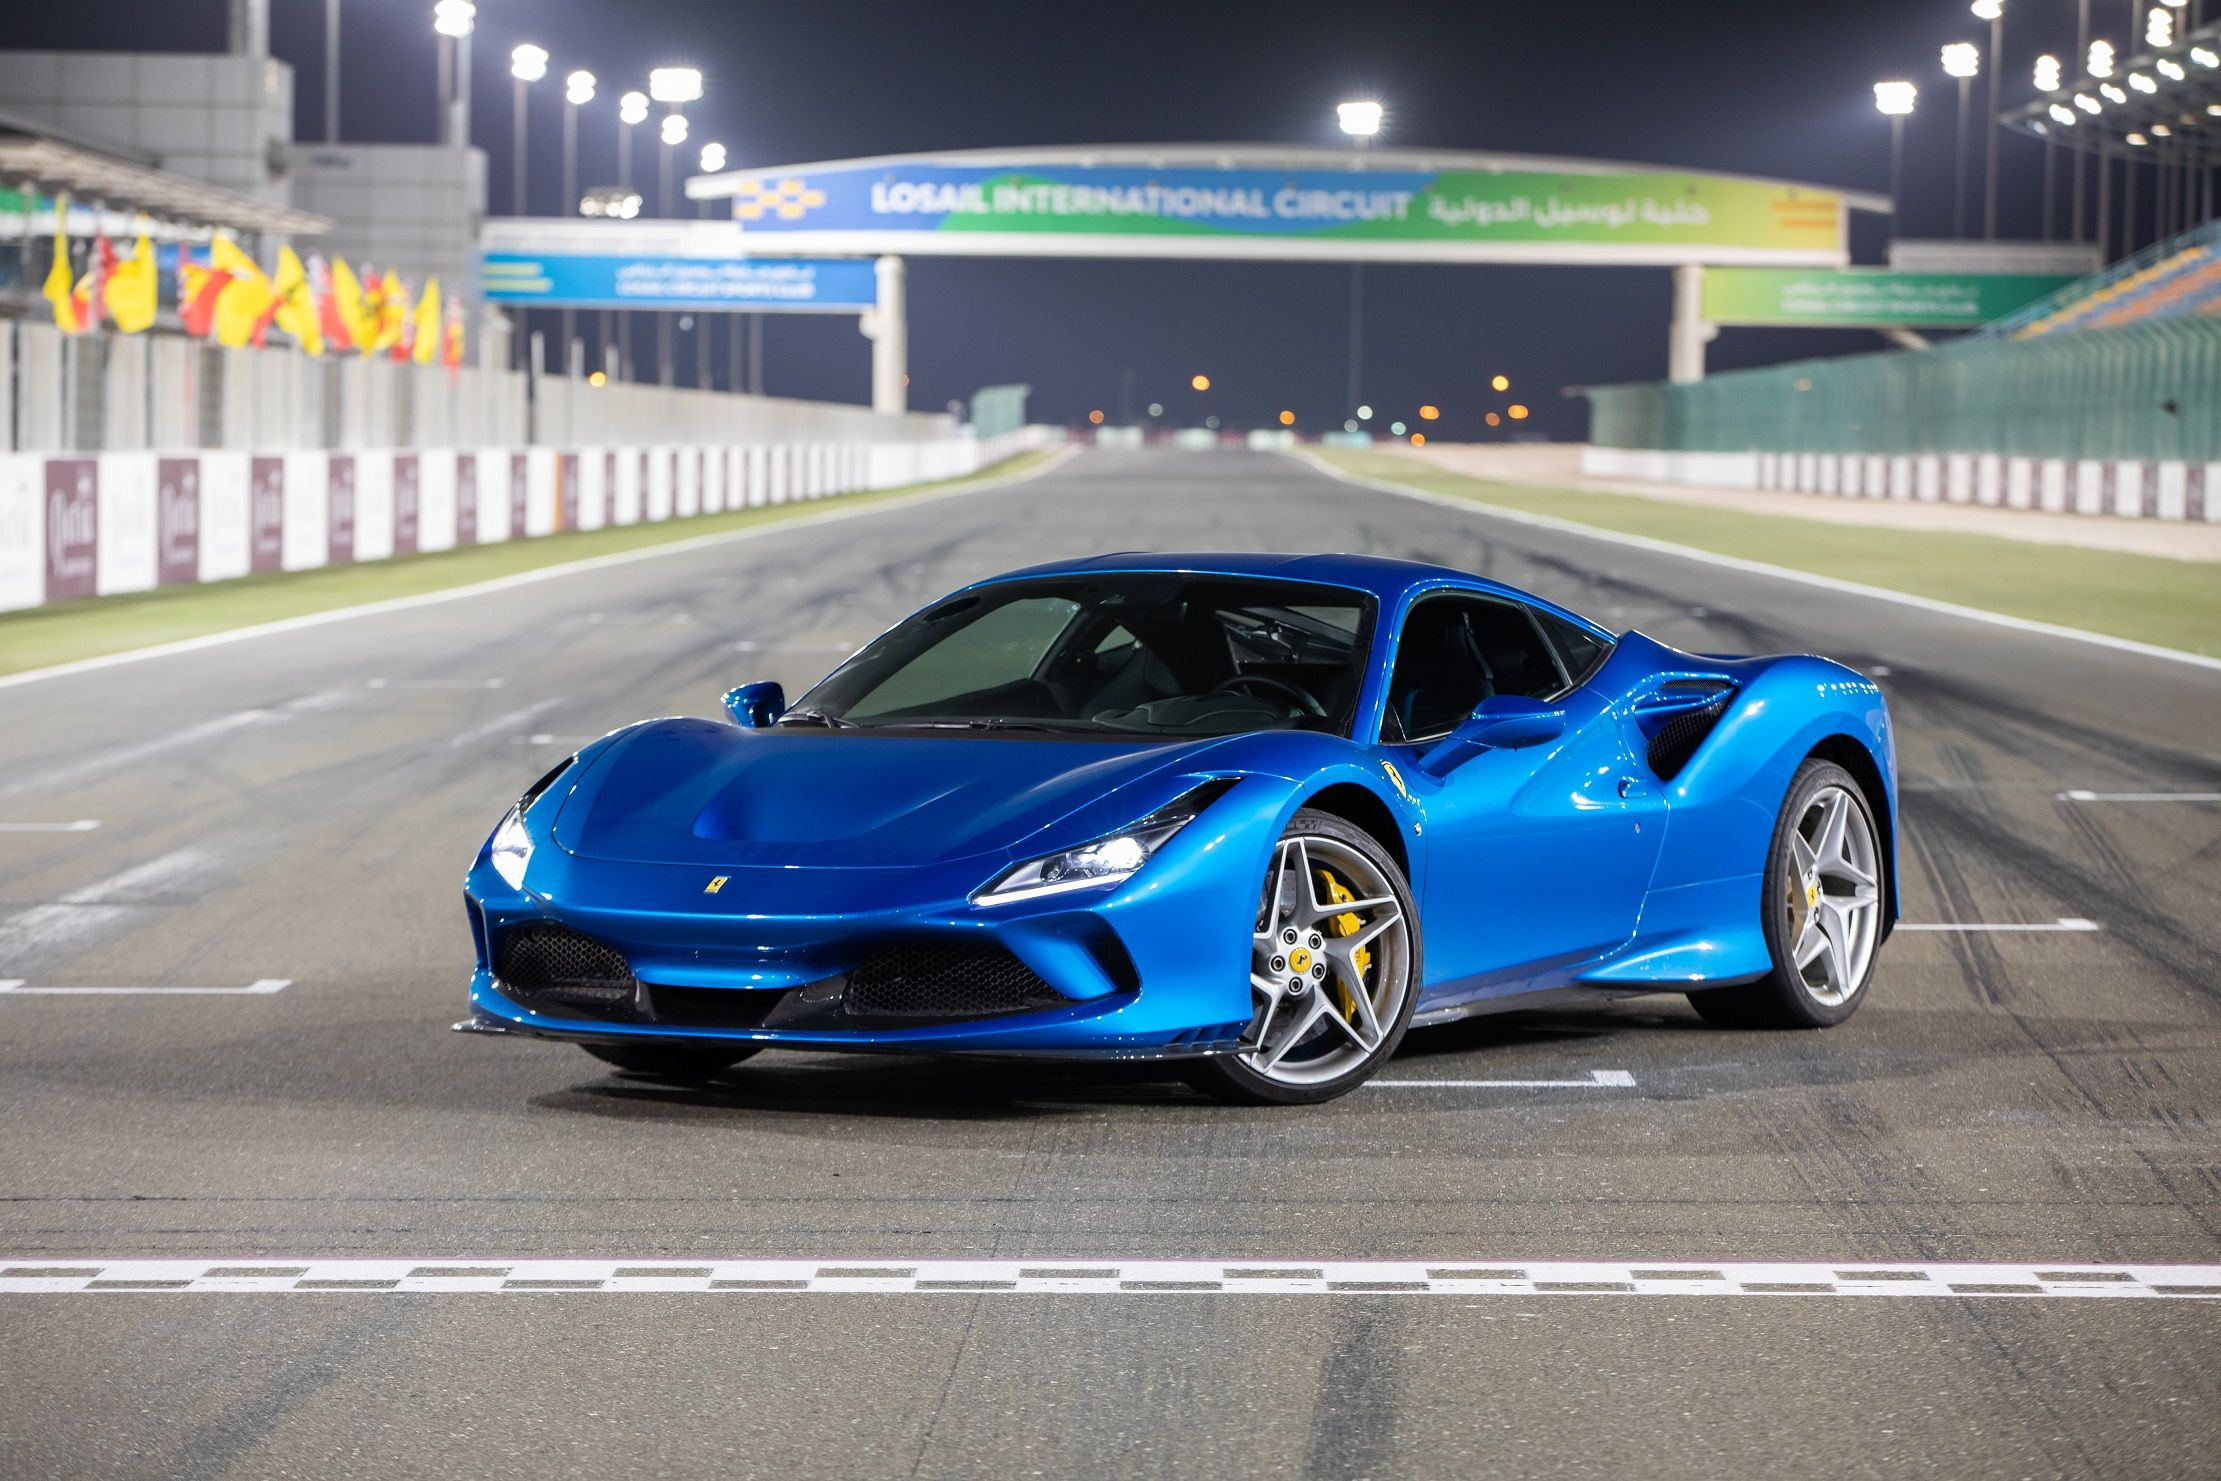 20 Of The Best Sports Cars You Can Buy In 2020